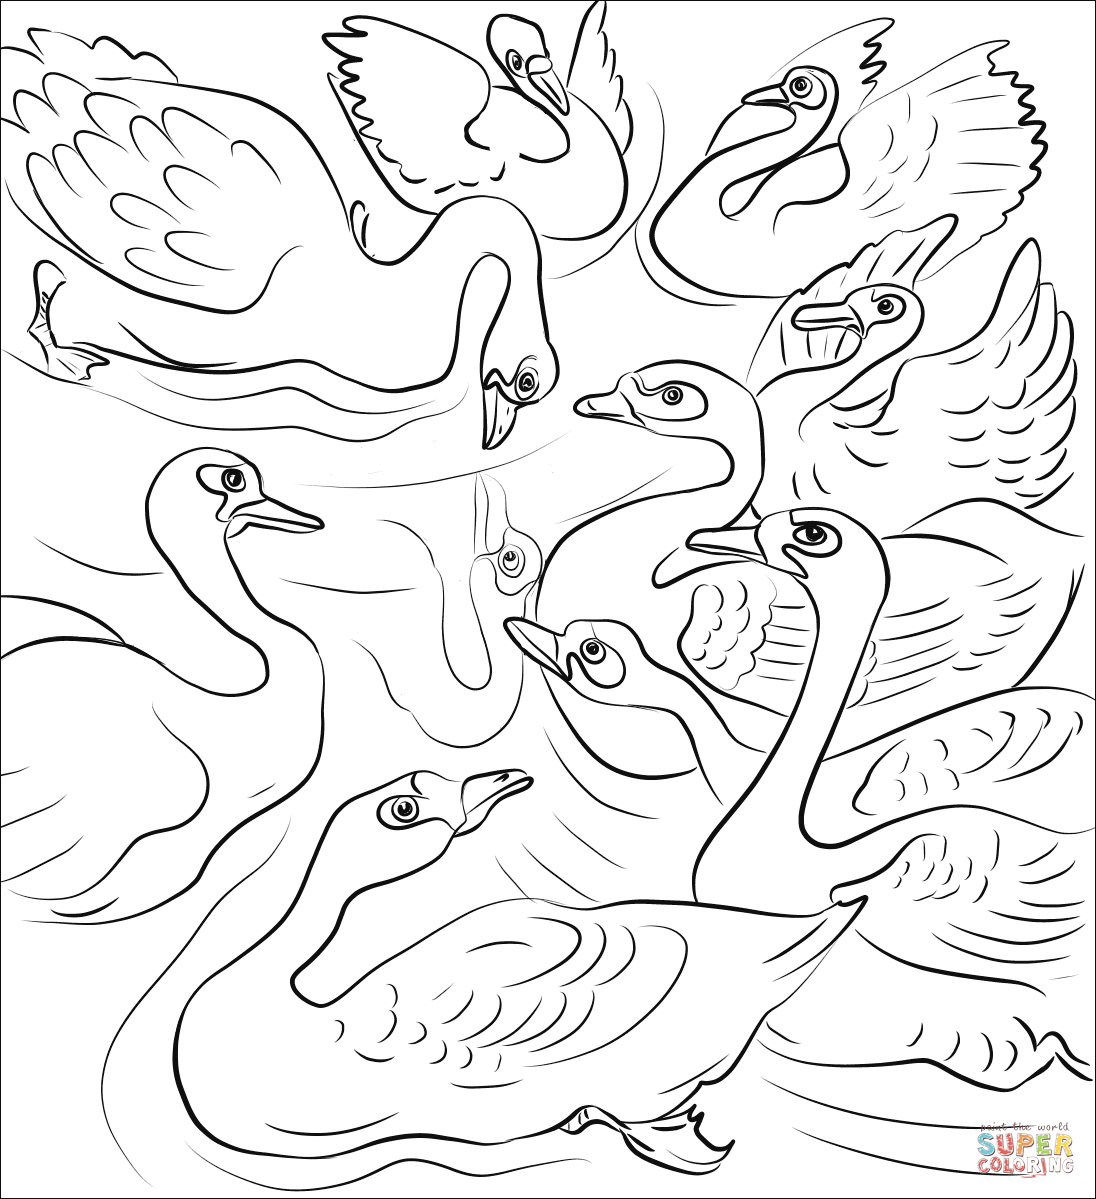 The Ugly Duckling Throw Himself at the Flock of Swans